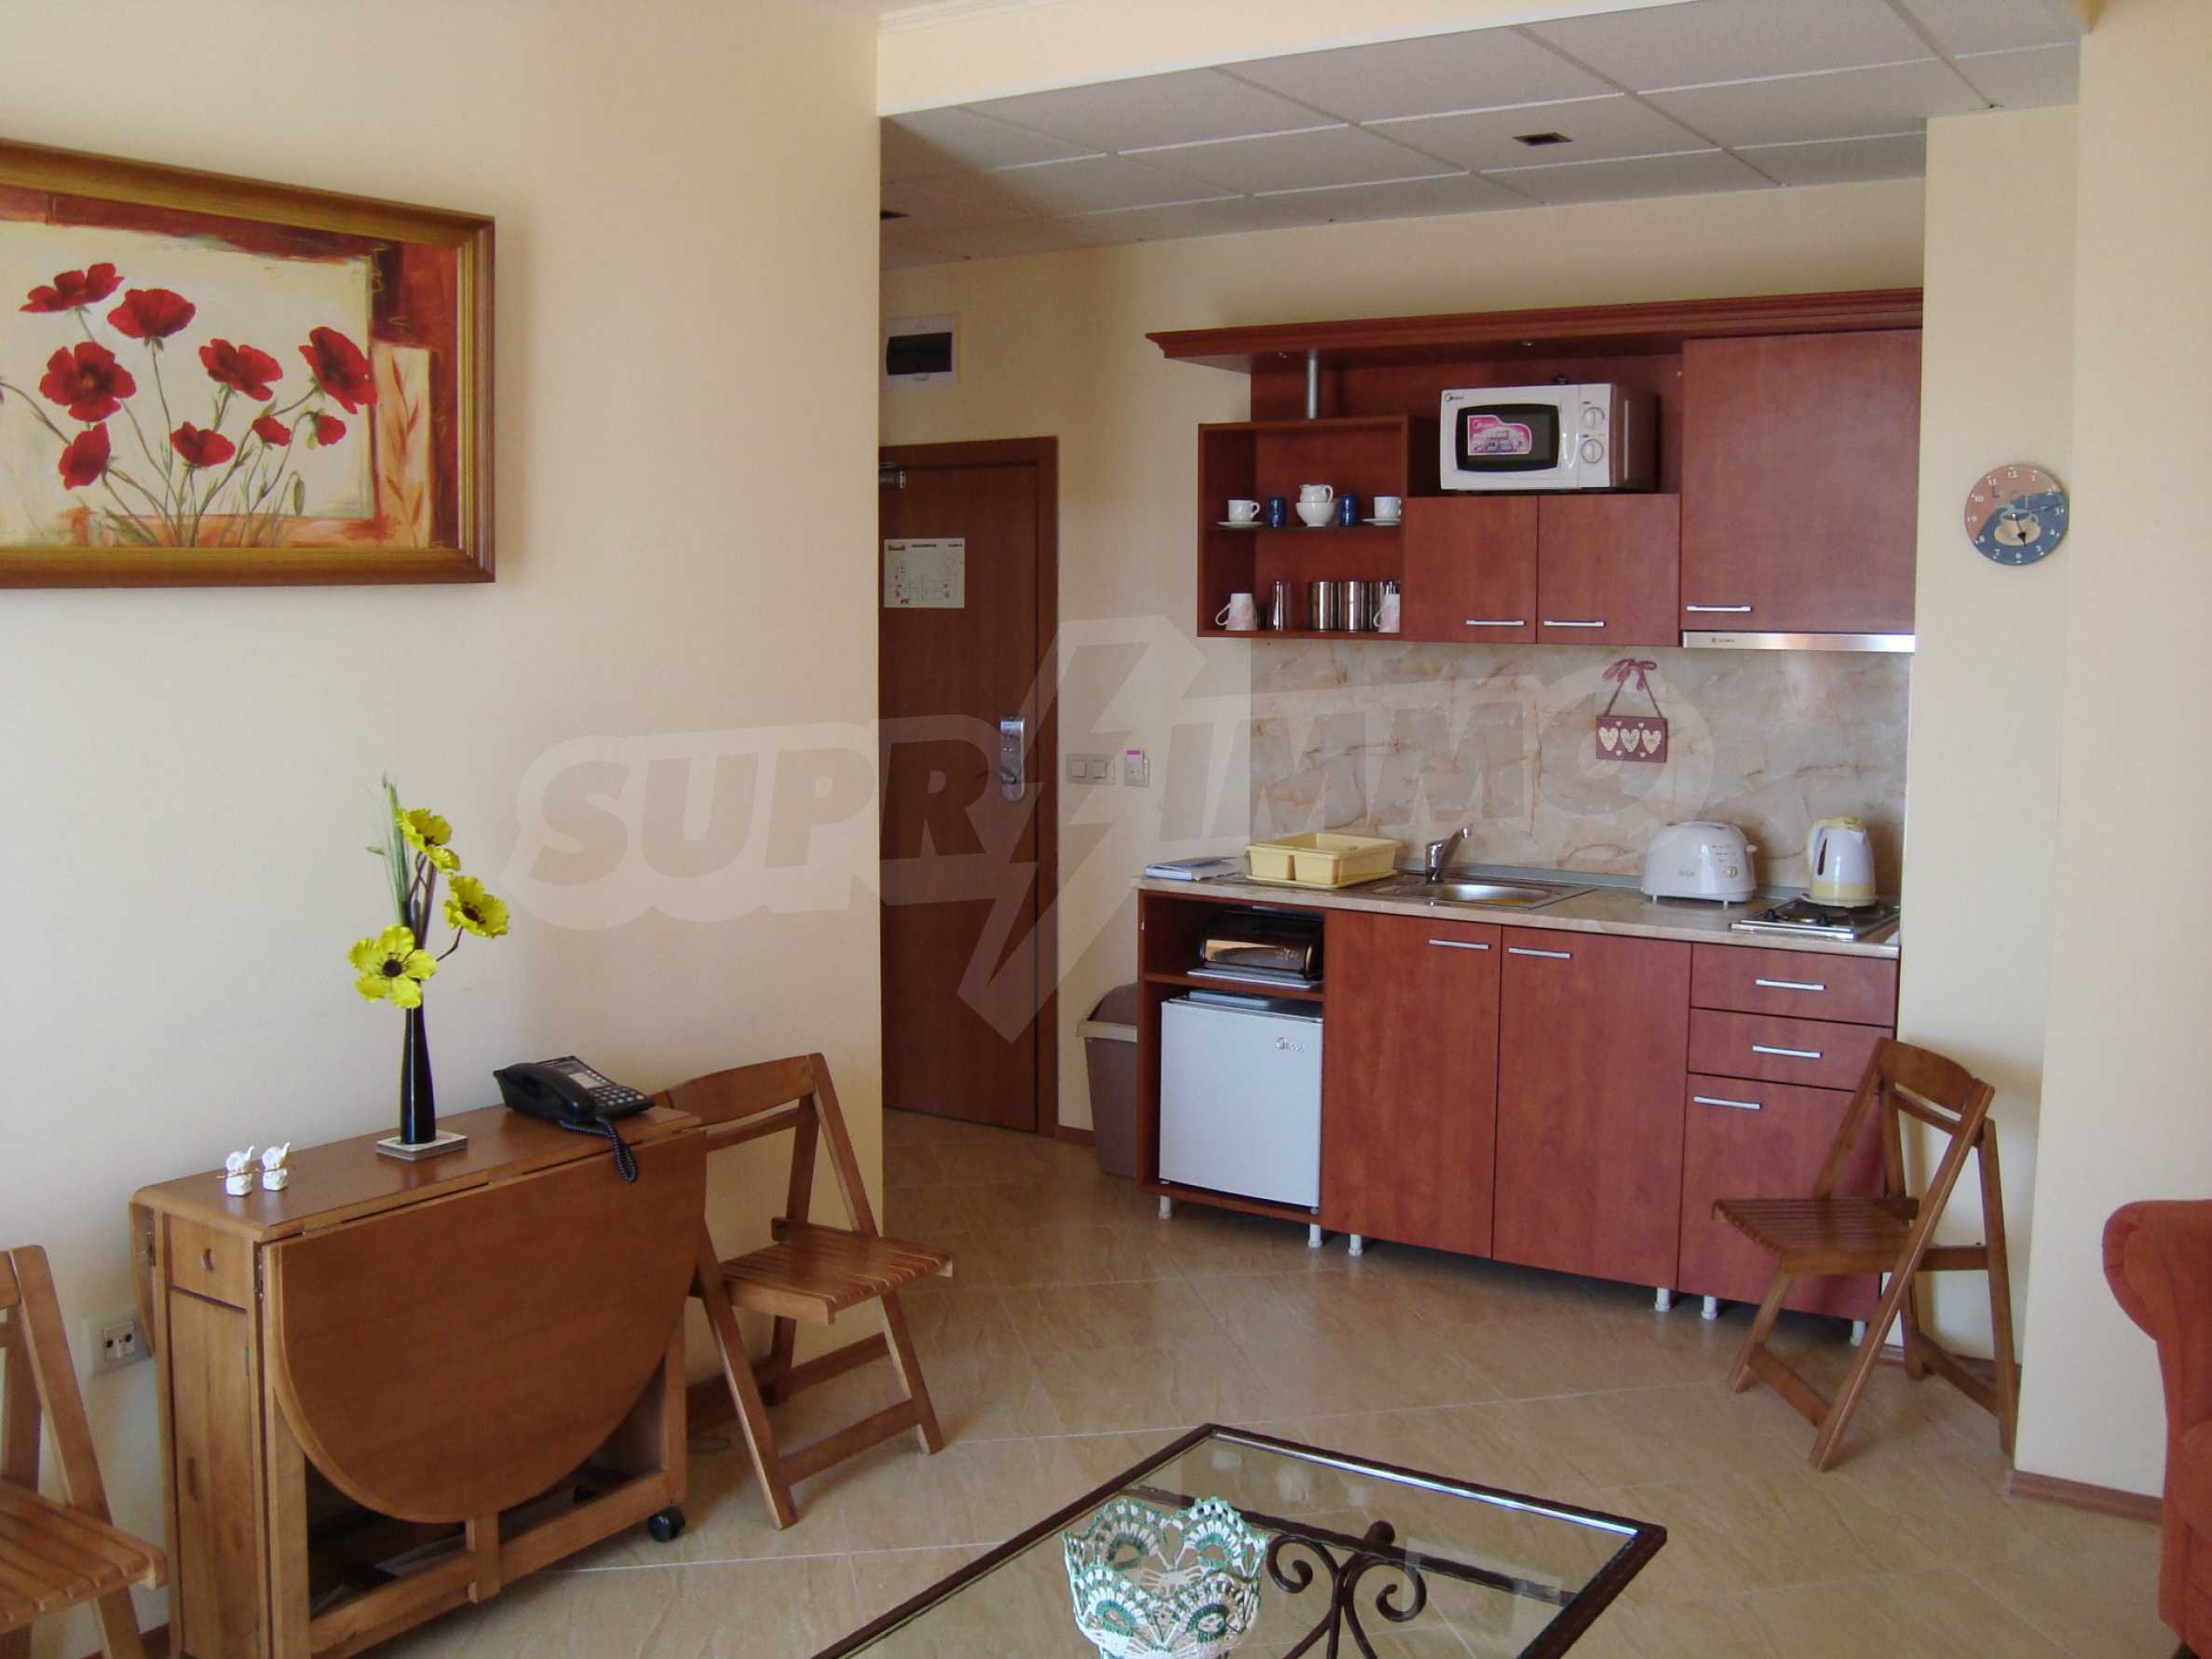 One-bedroom apartment in Palazzo 1 complex in Sunny beach